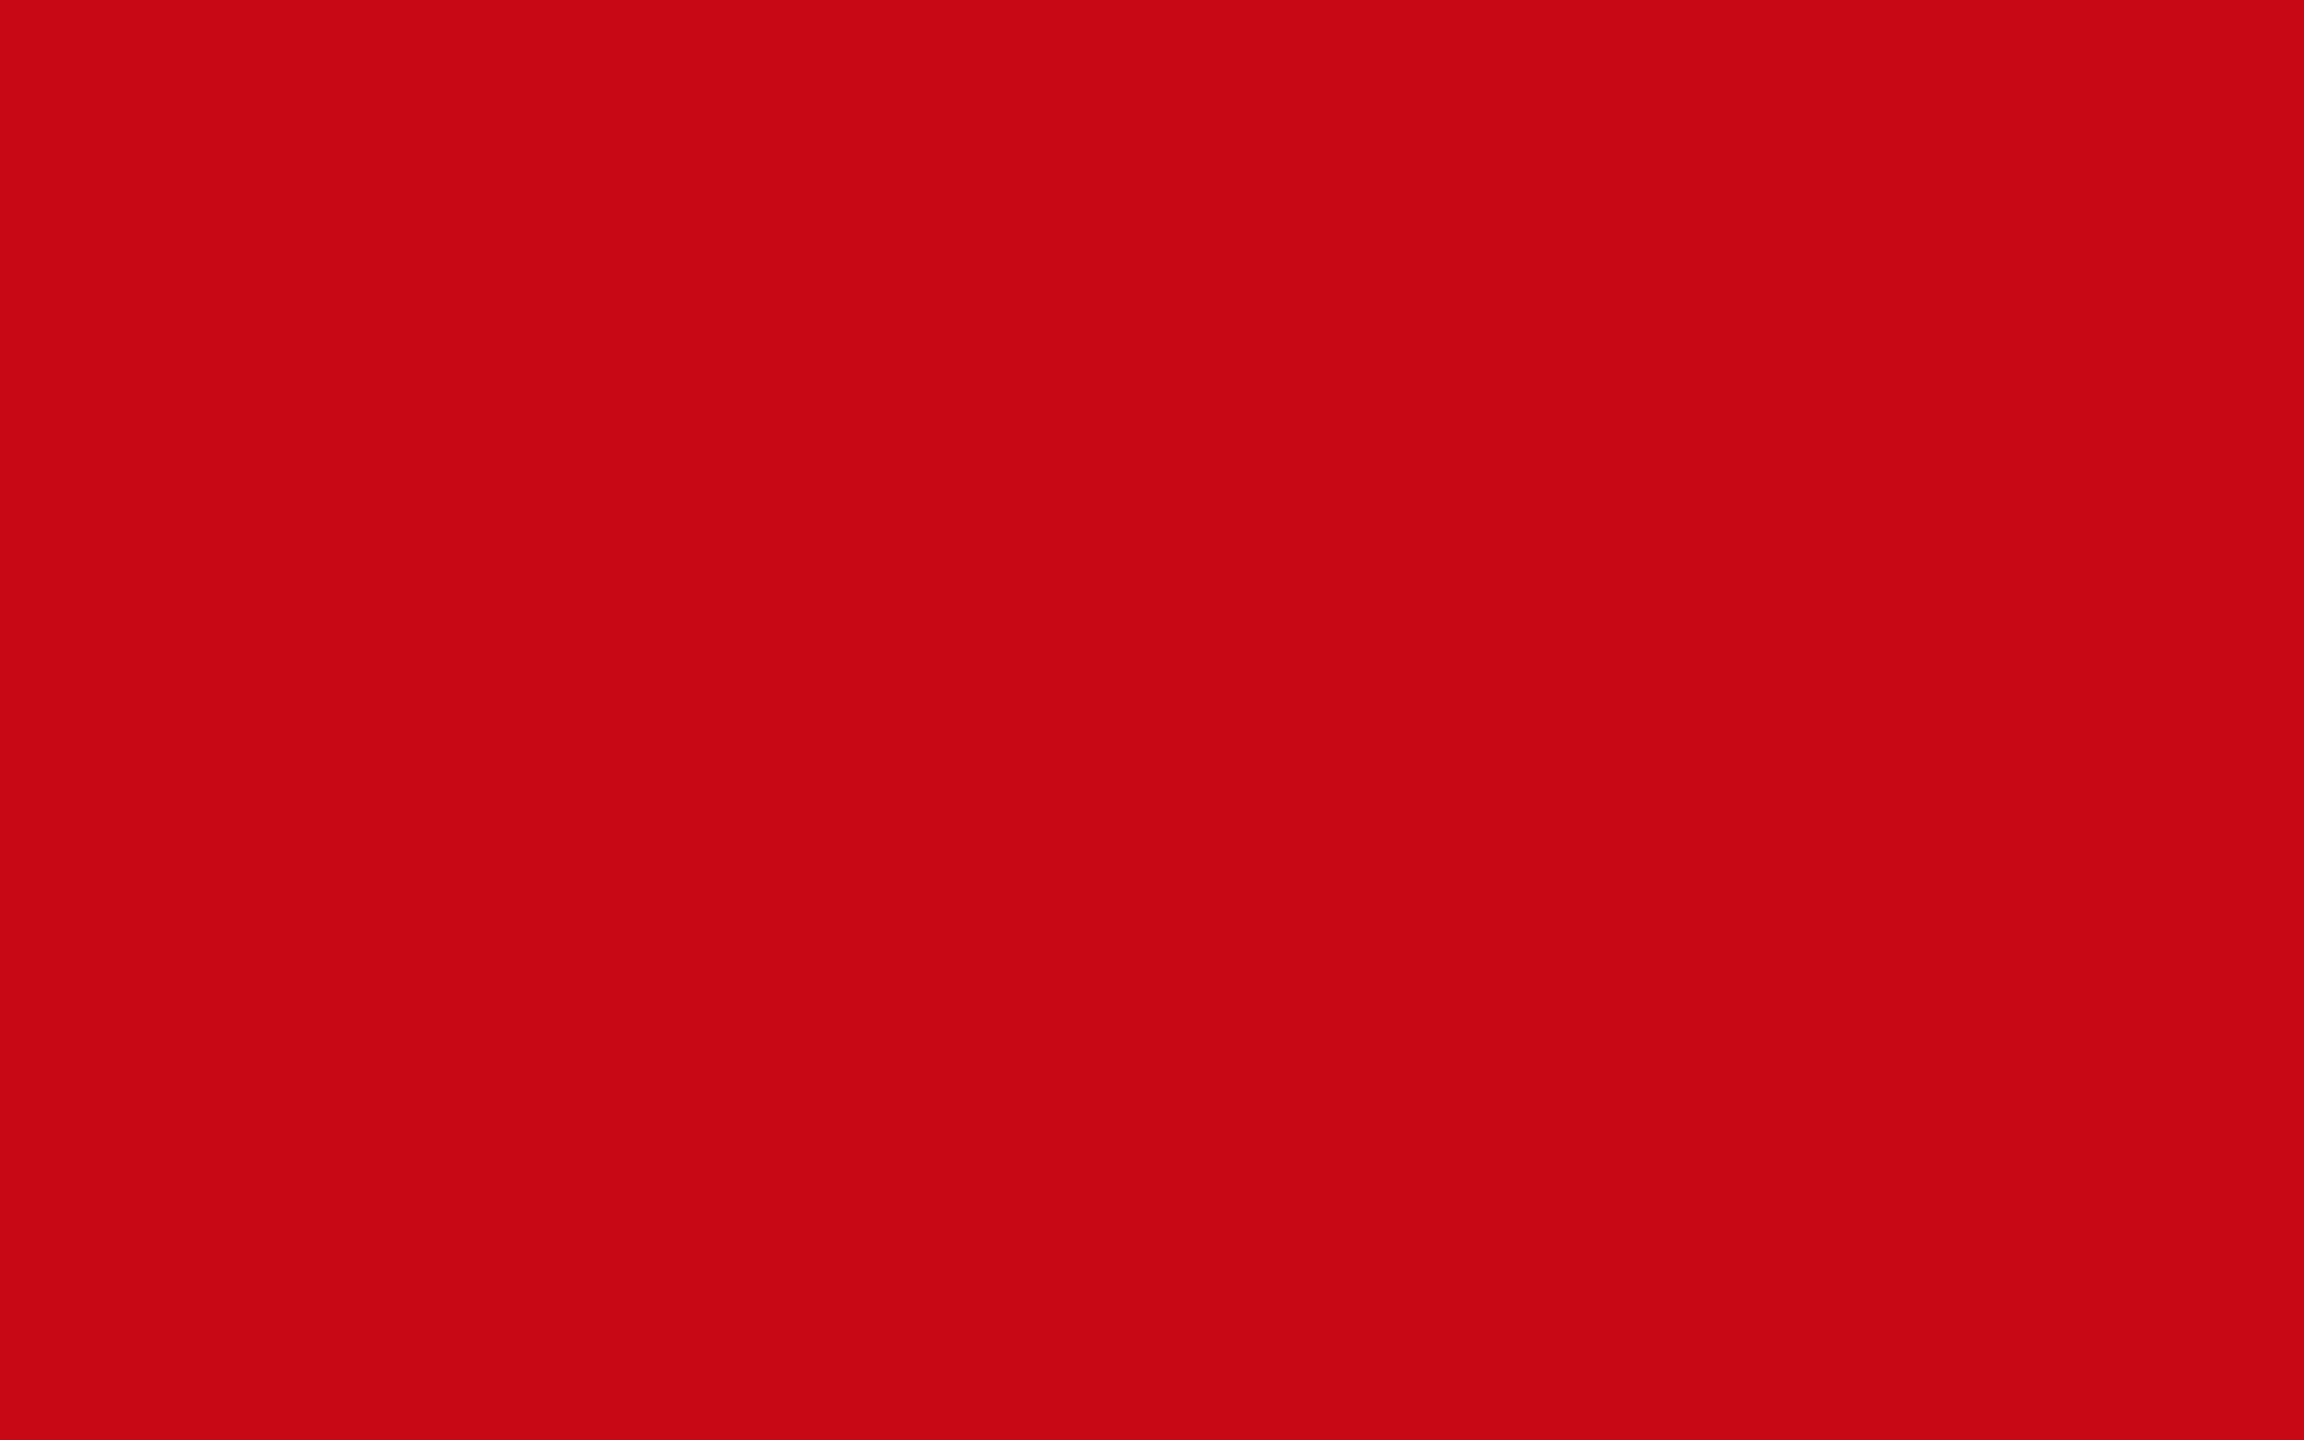 2304x1440 Venetian Red Solid Color Background